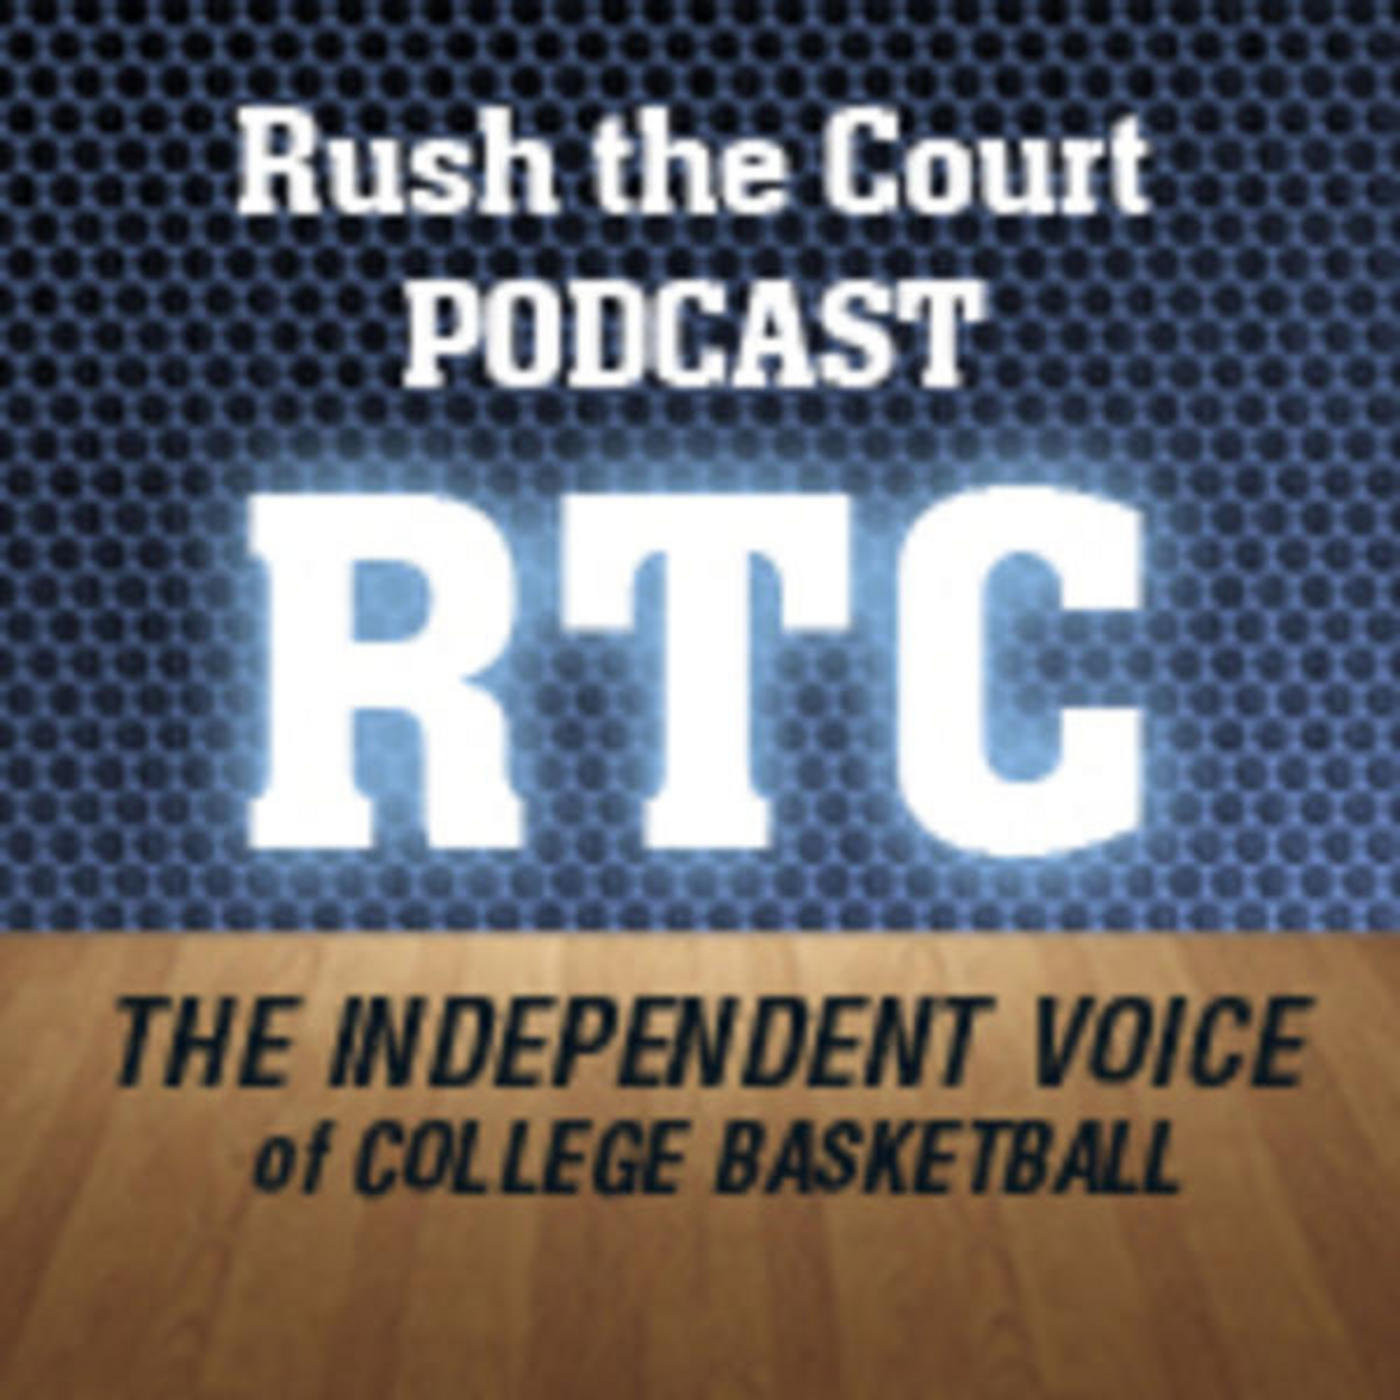 Rush the Court Podblast: South Region Preview Edition